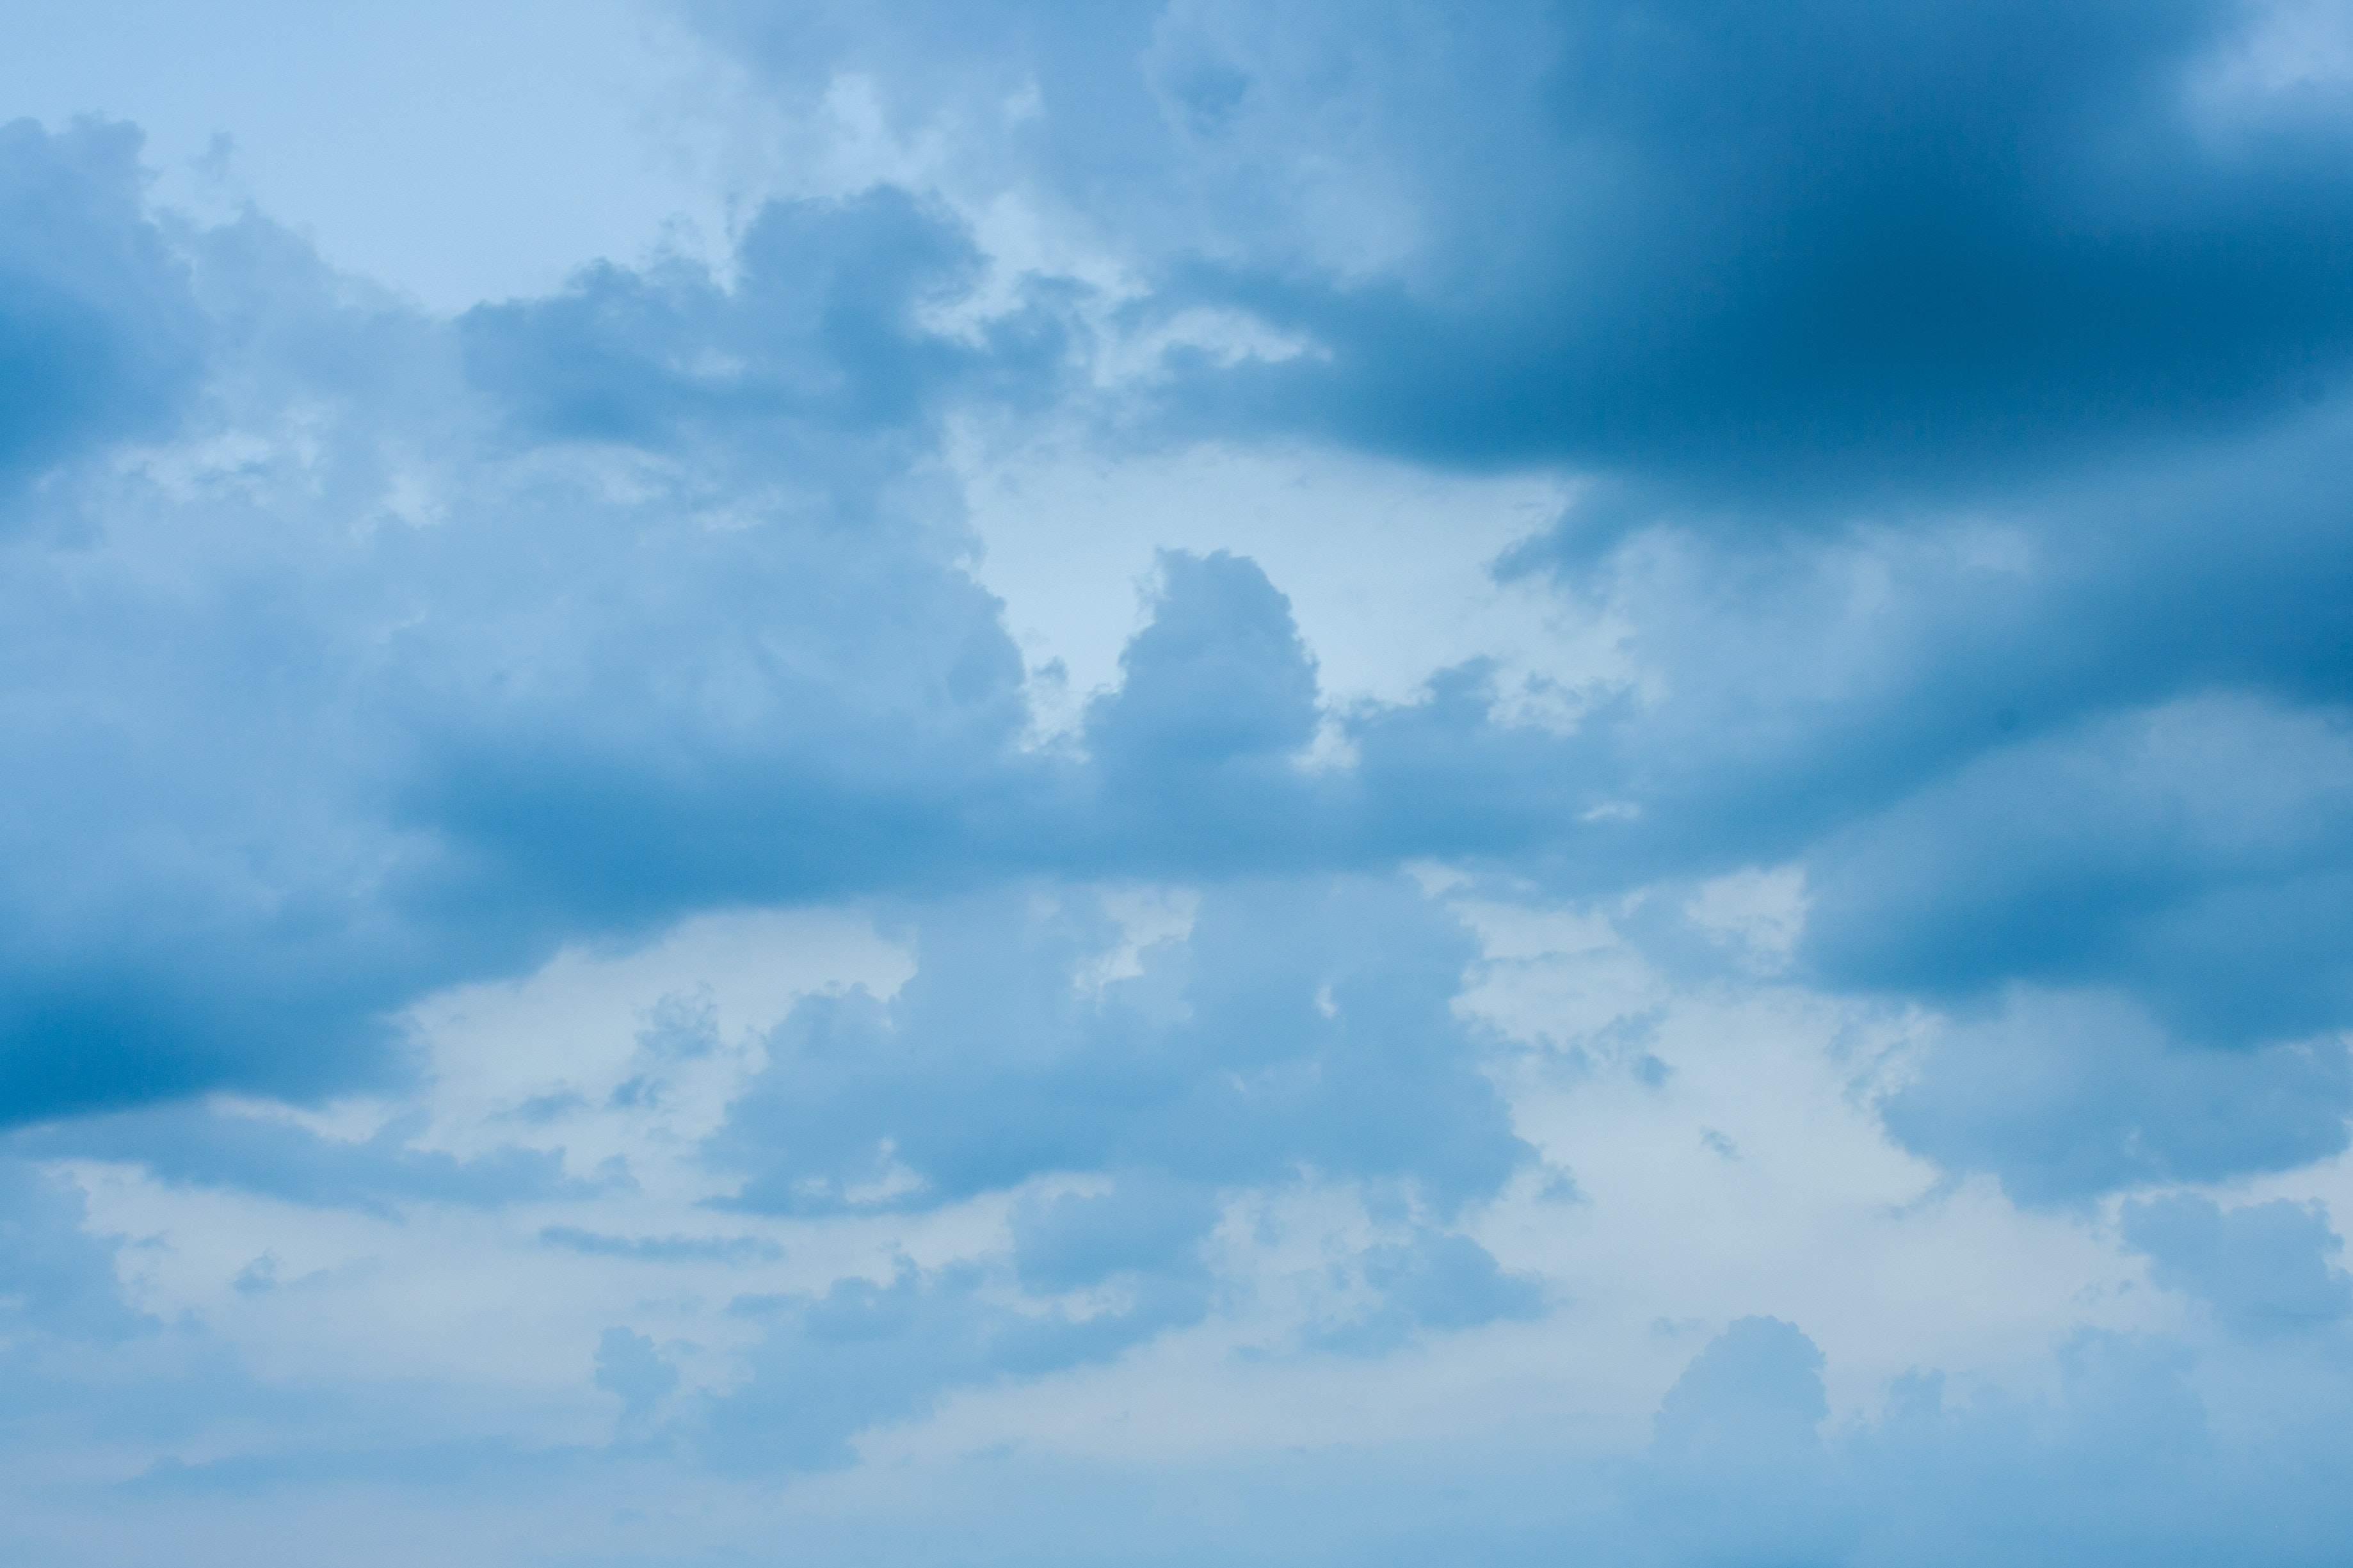 Free stock photo of cloudy skies, cloudy sky, dramatic sky